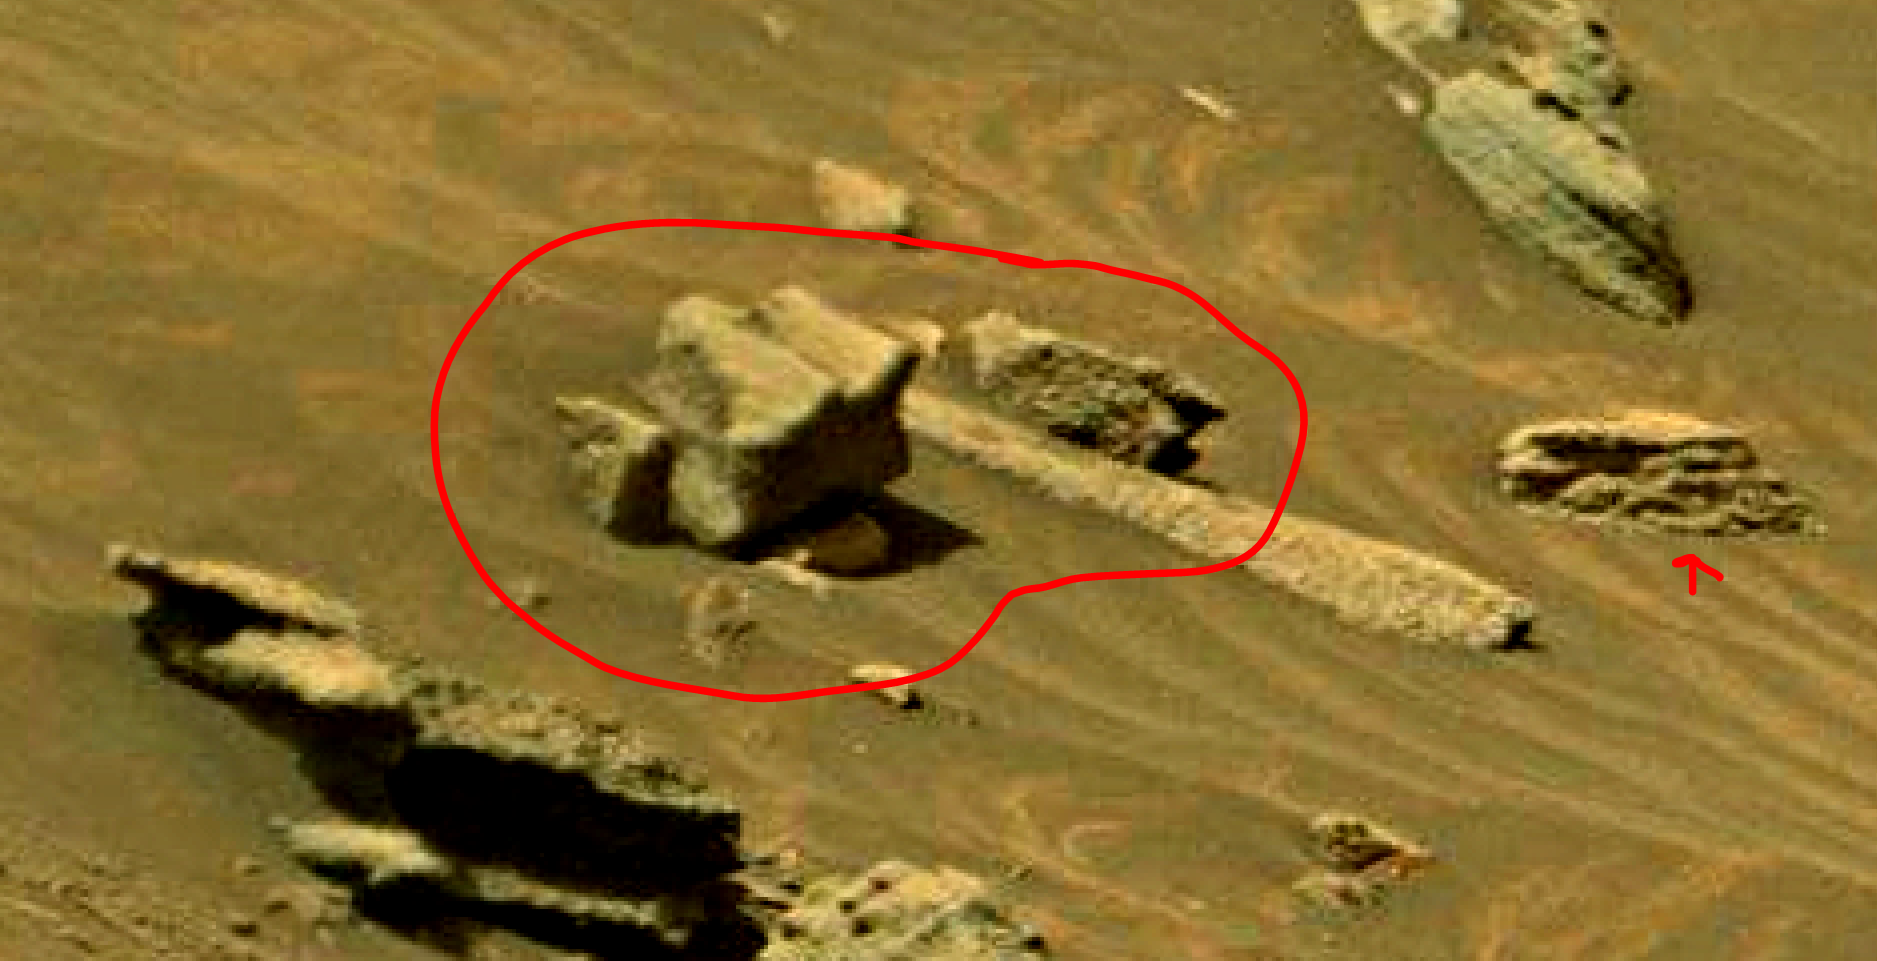 mars-sol-1467-anomaly-artifacts-11-was-life-on-mars